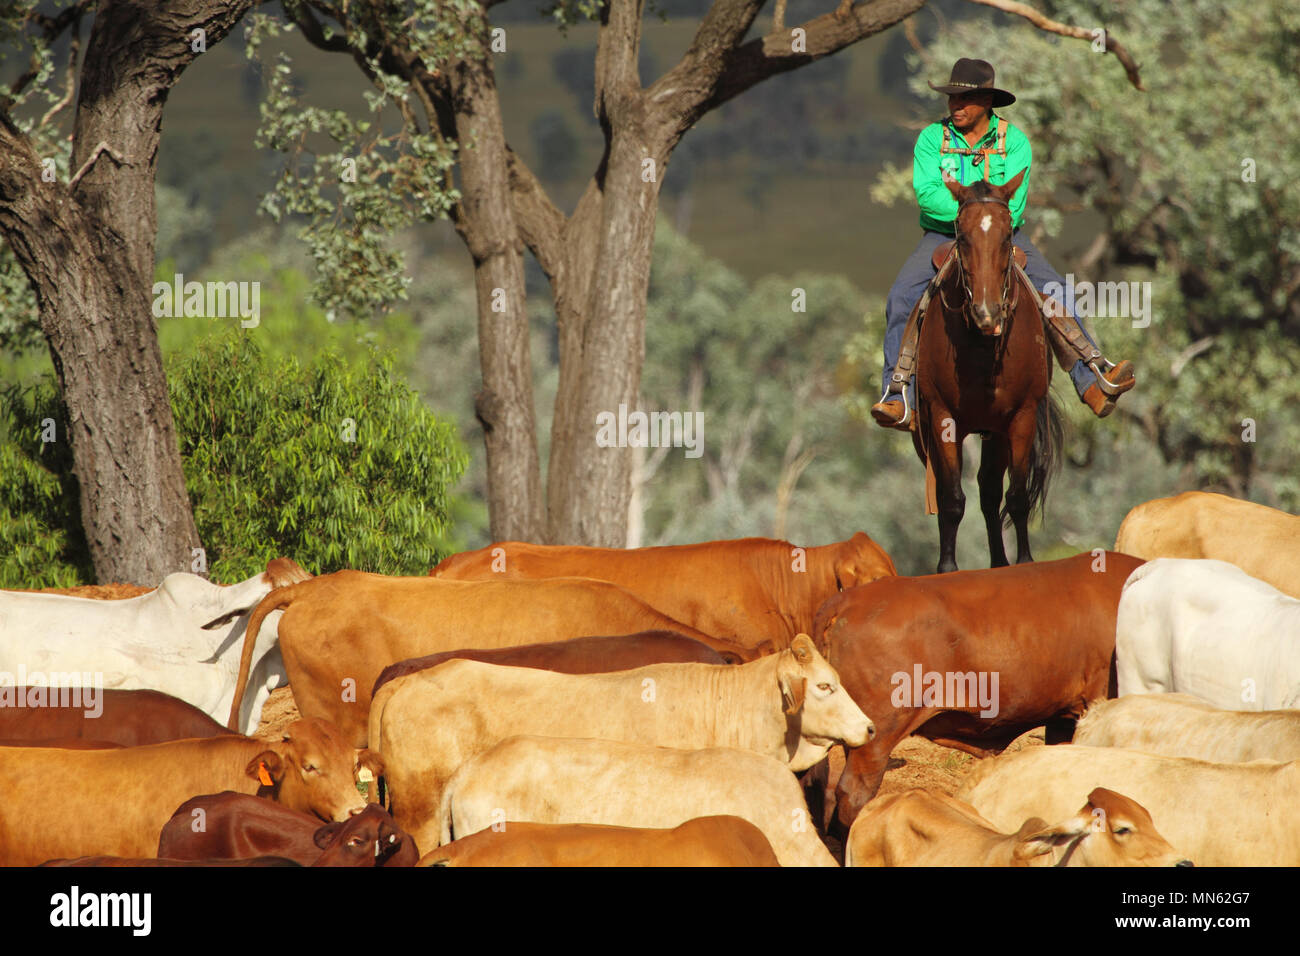 Aboriginal man riding horse and mustering cattle on a farm. - Stock Image